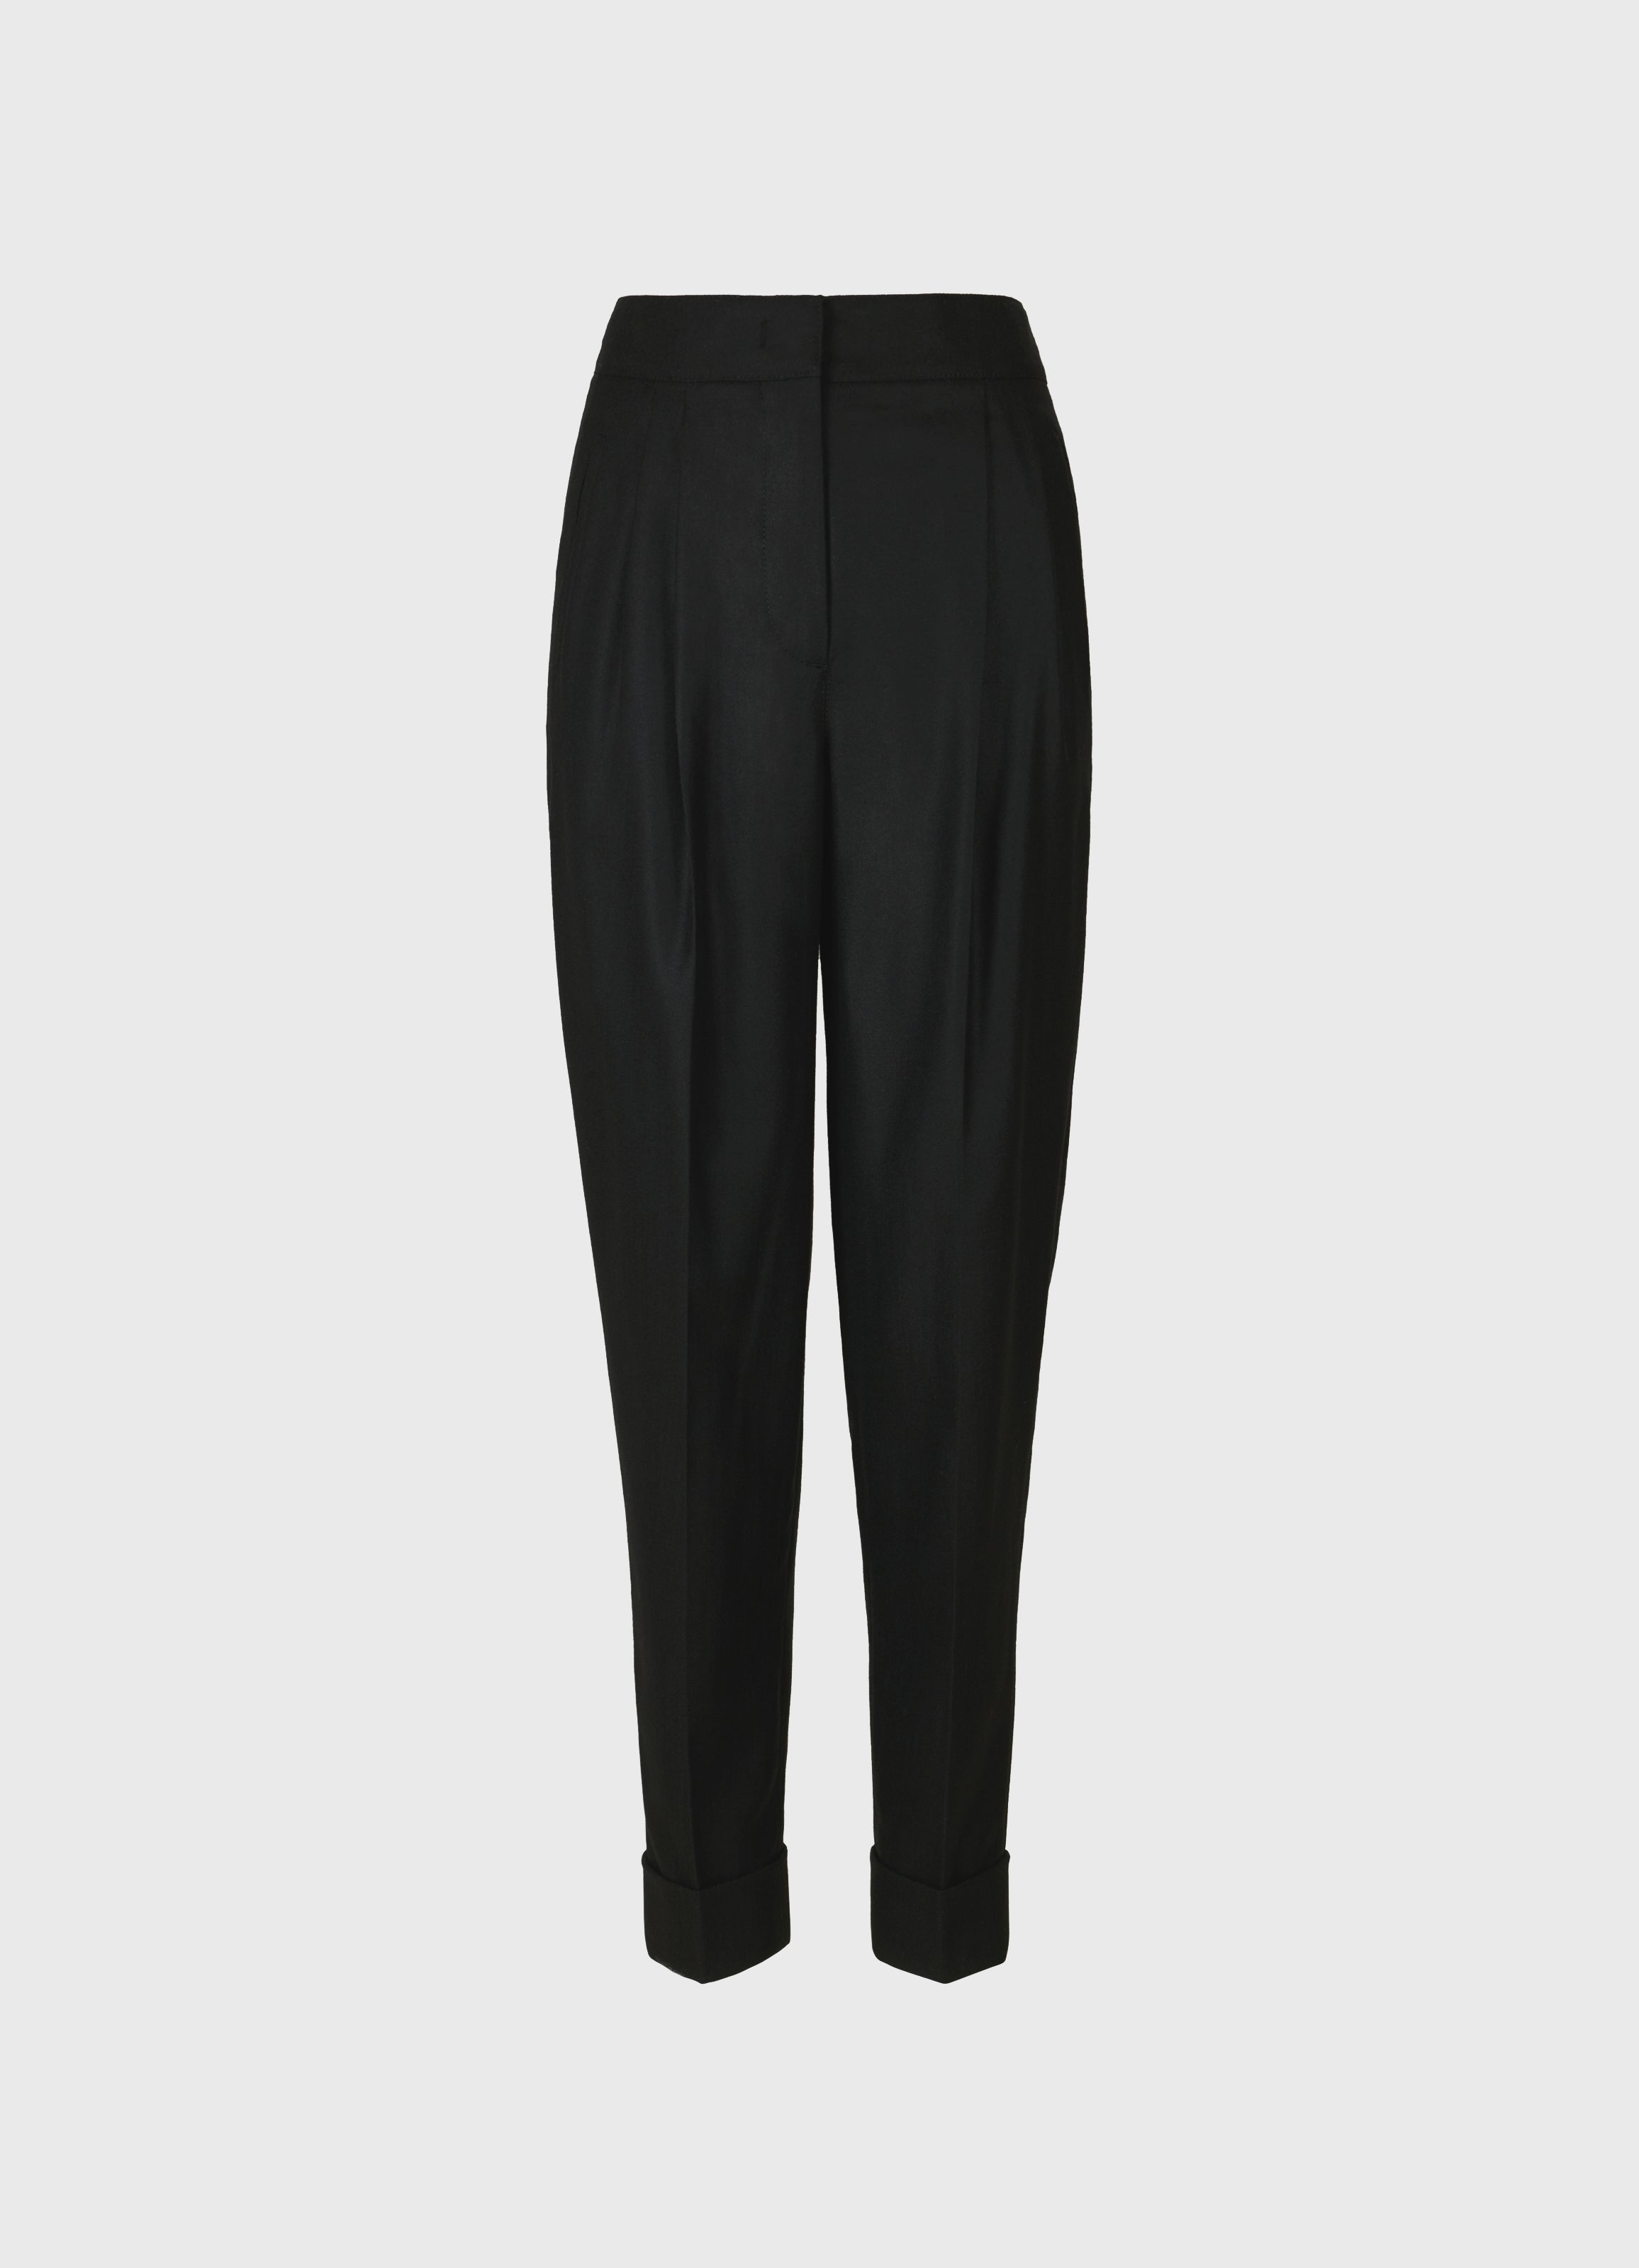 Leblon high-waist trousers